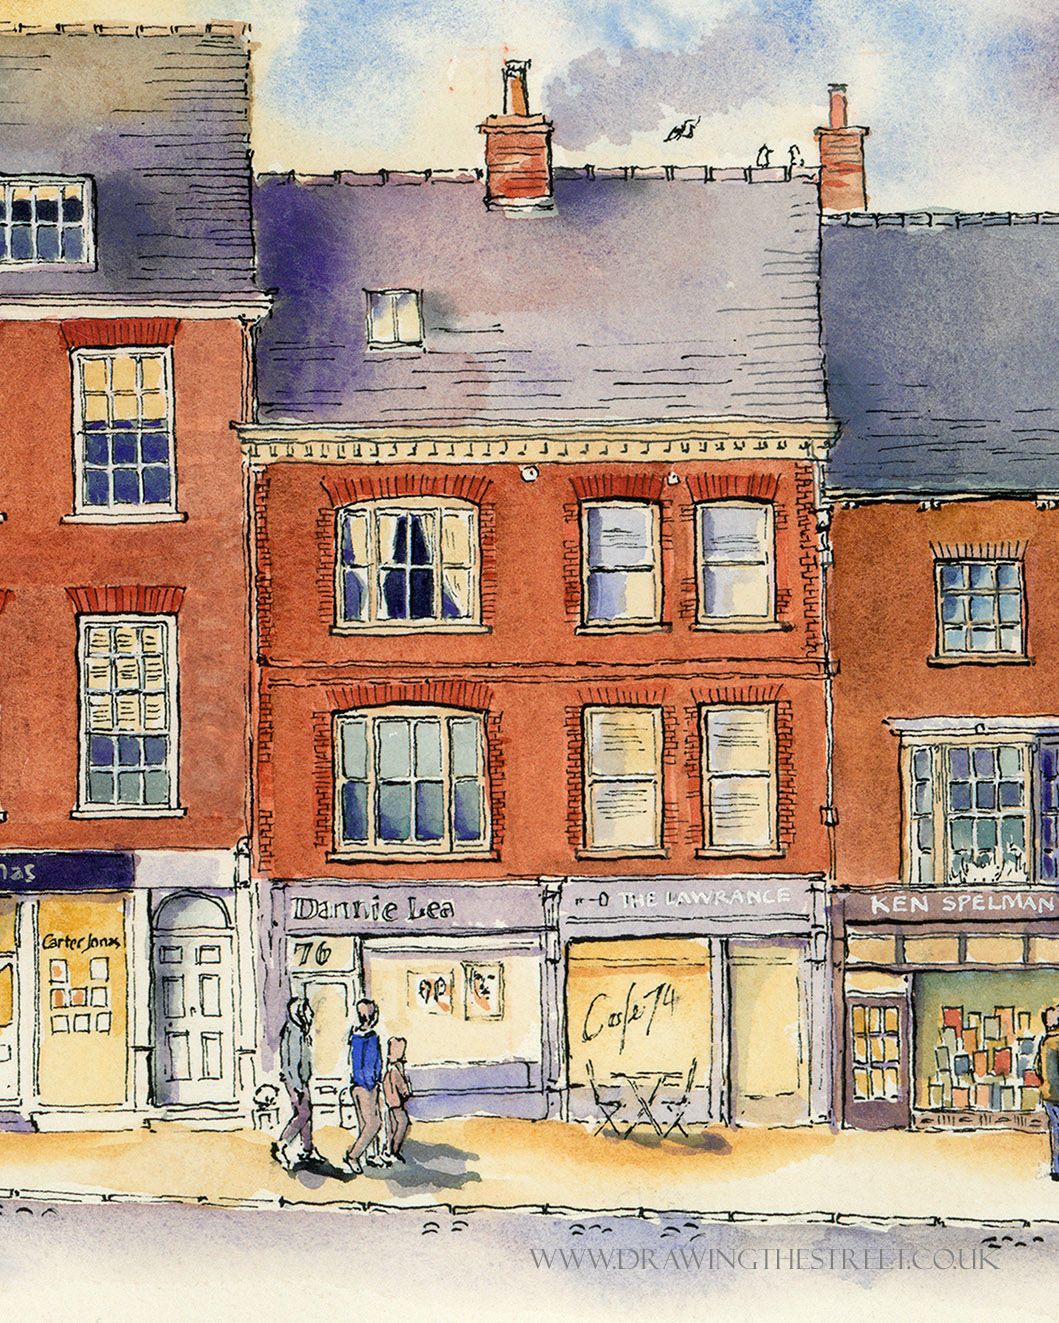 drawing by Ronnie Cruwys of Dannie Lea and The Lawrance, Micklegate York